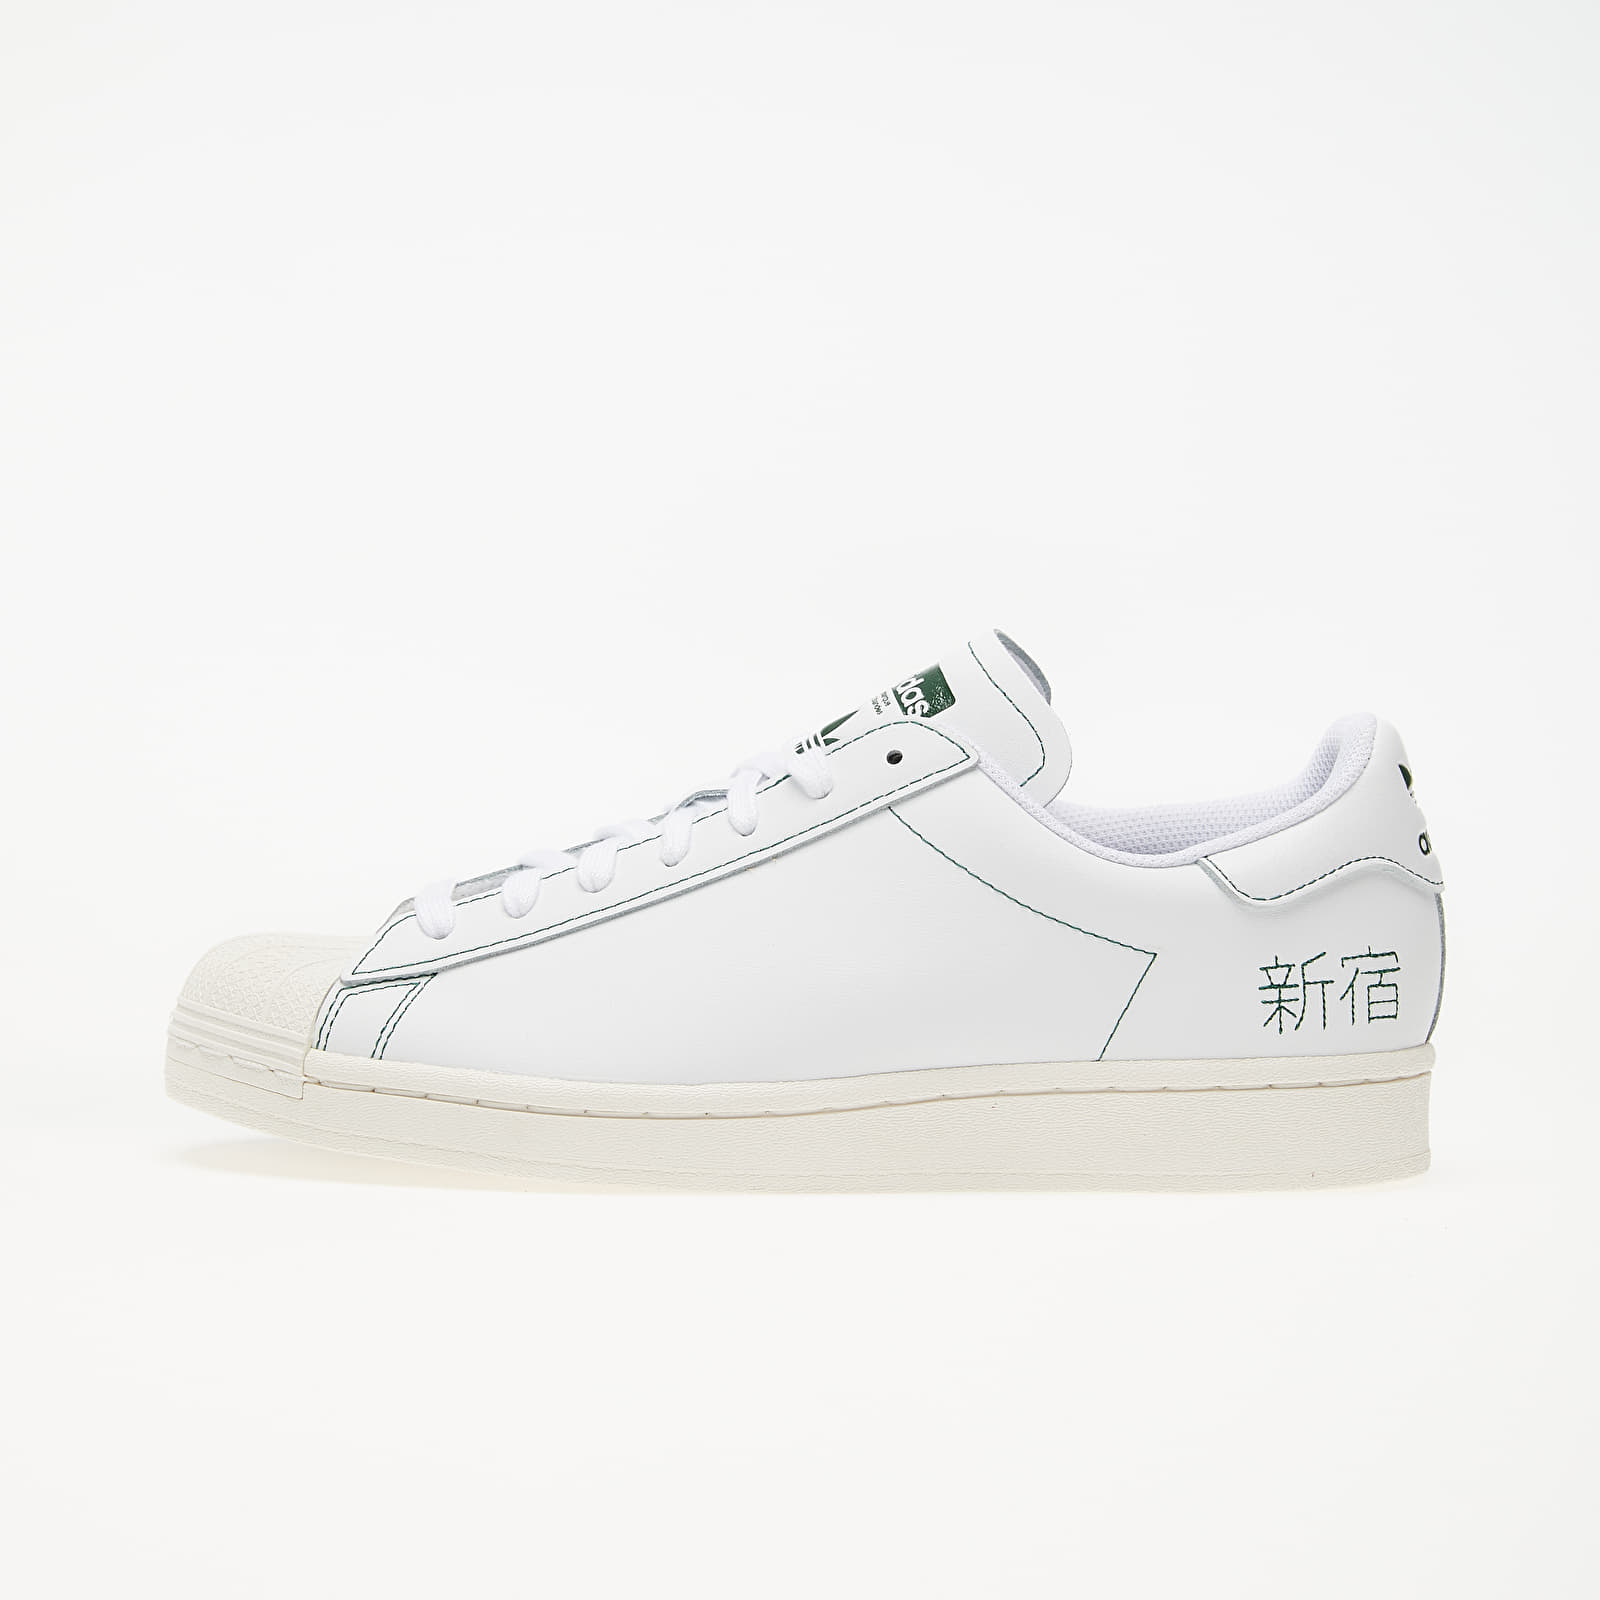 Men's shoes adidas Superstar Pure Ftw White/ Ftw White/ Core White